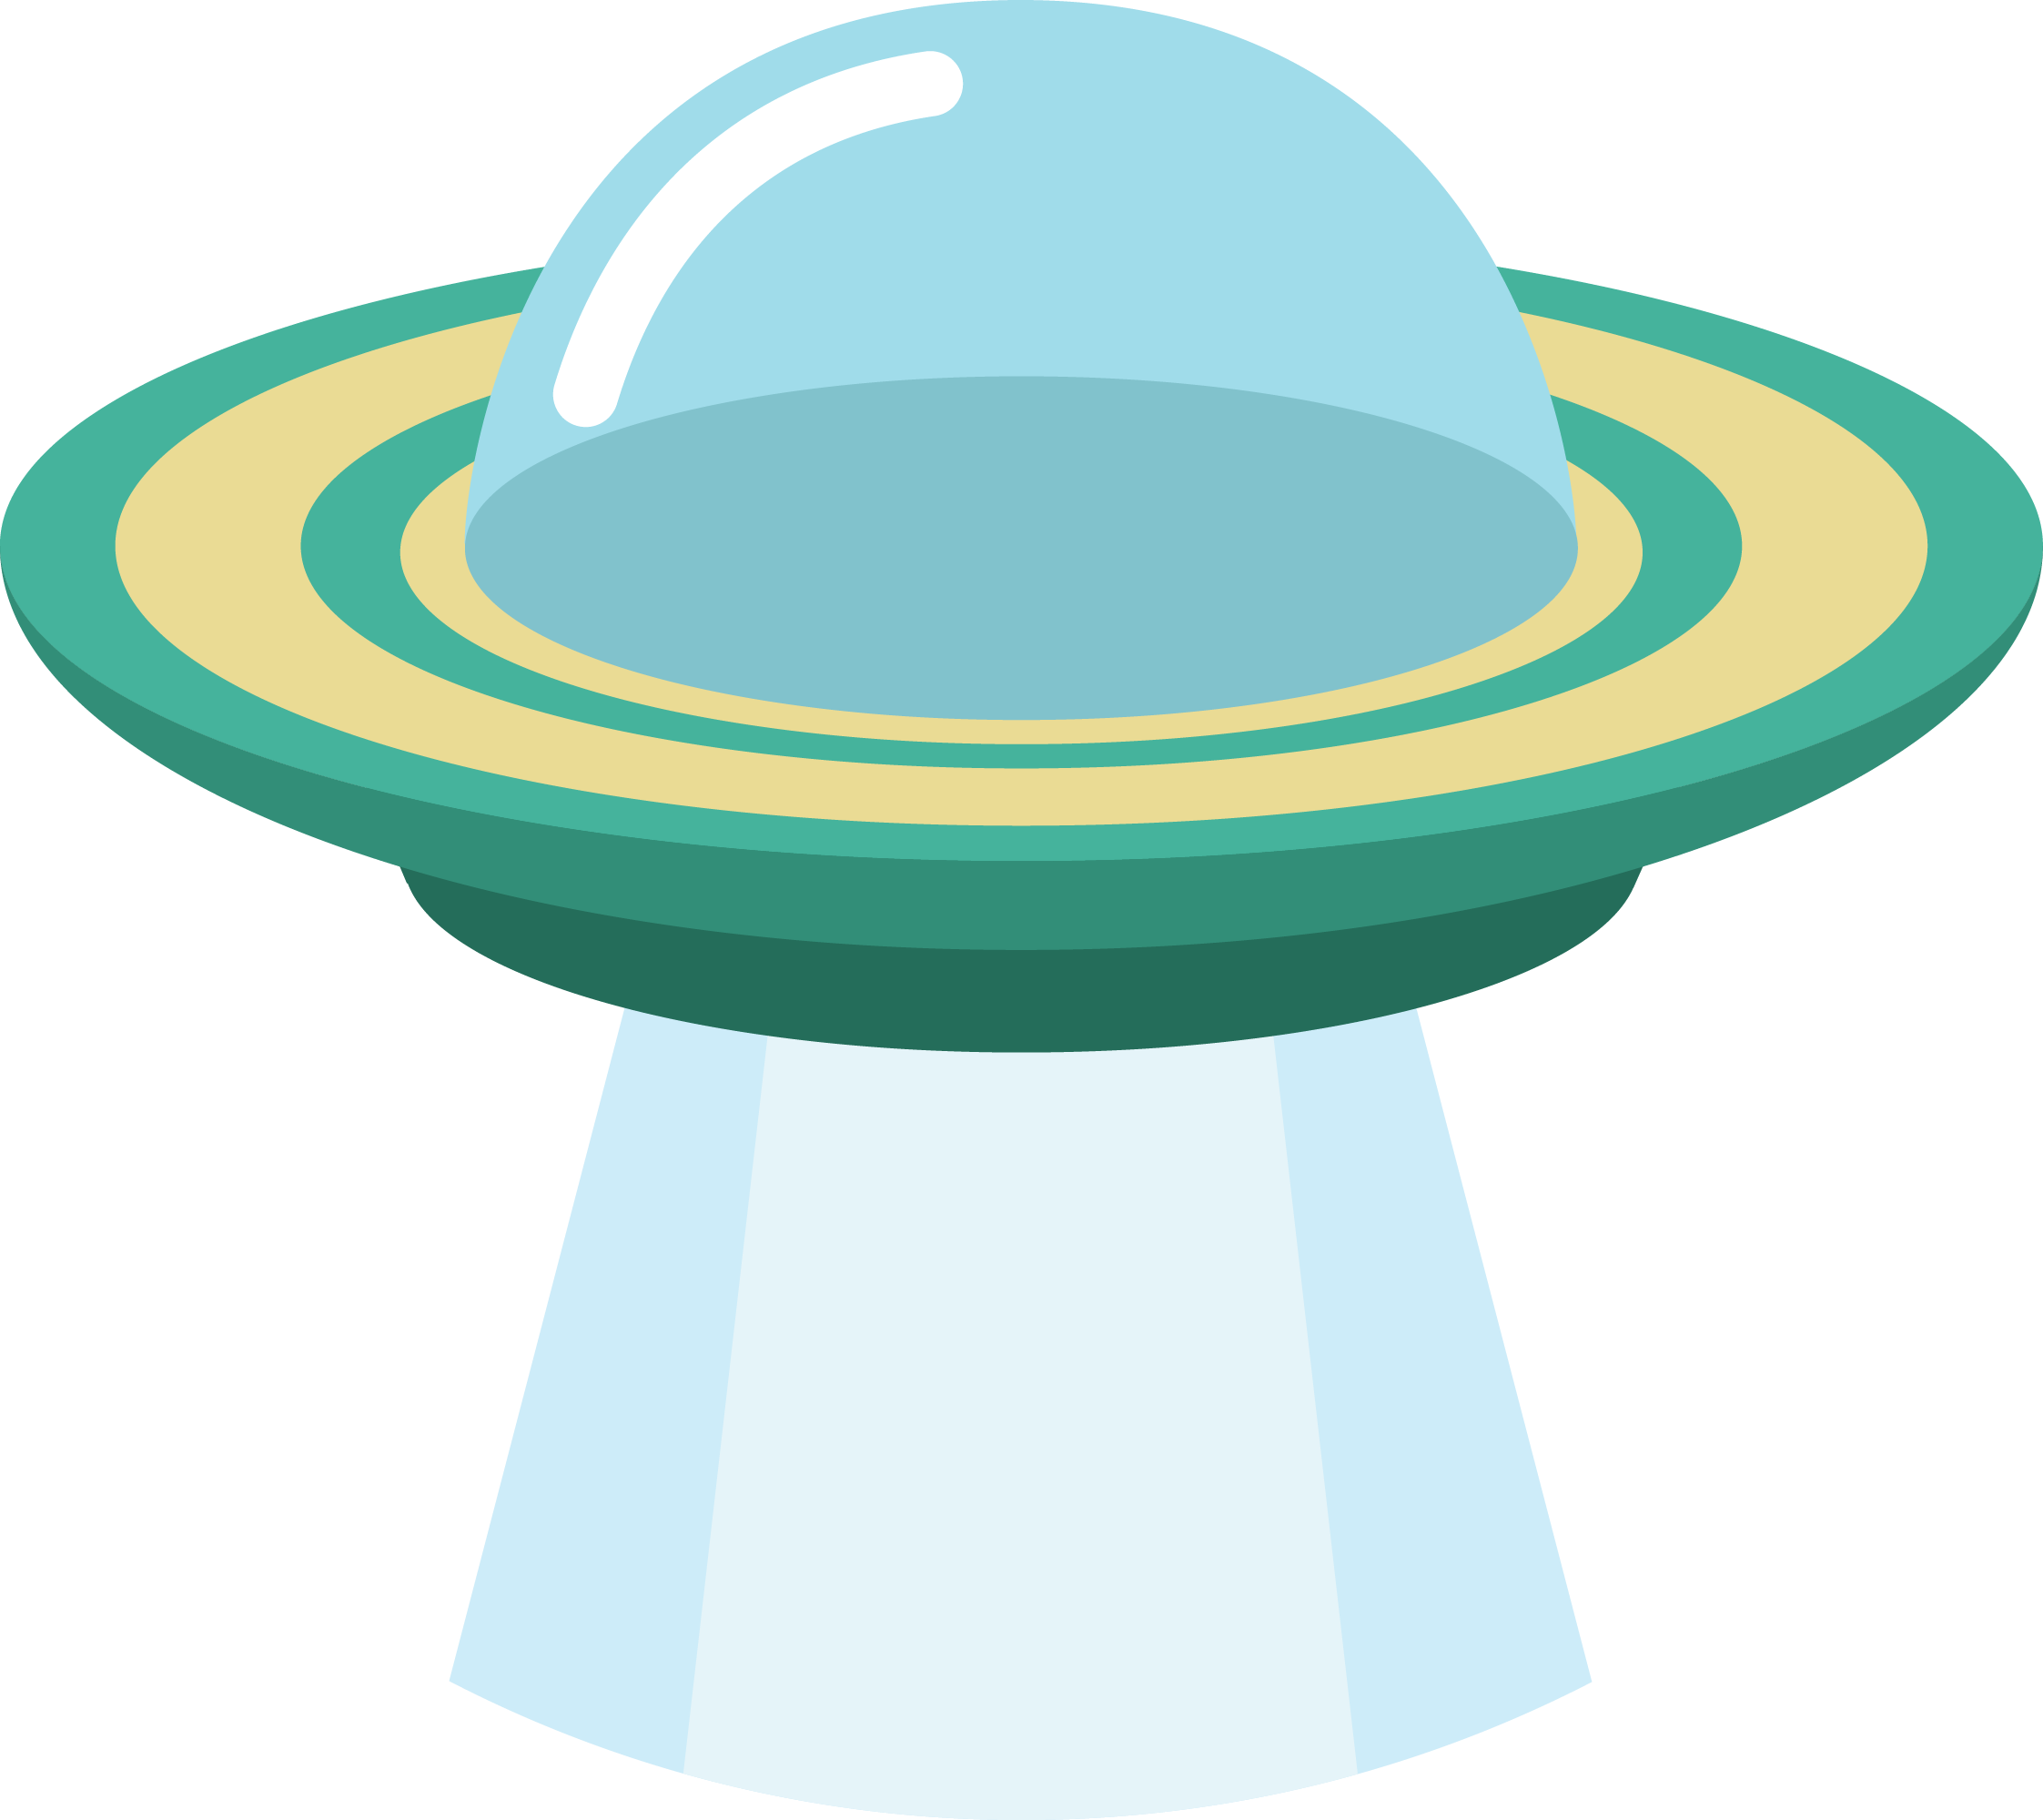 Ufo Clipart PNG Image.